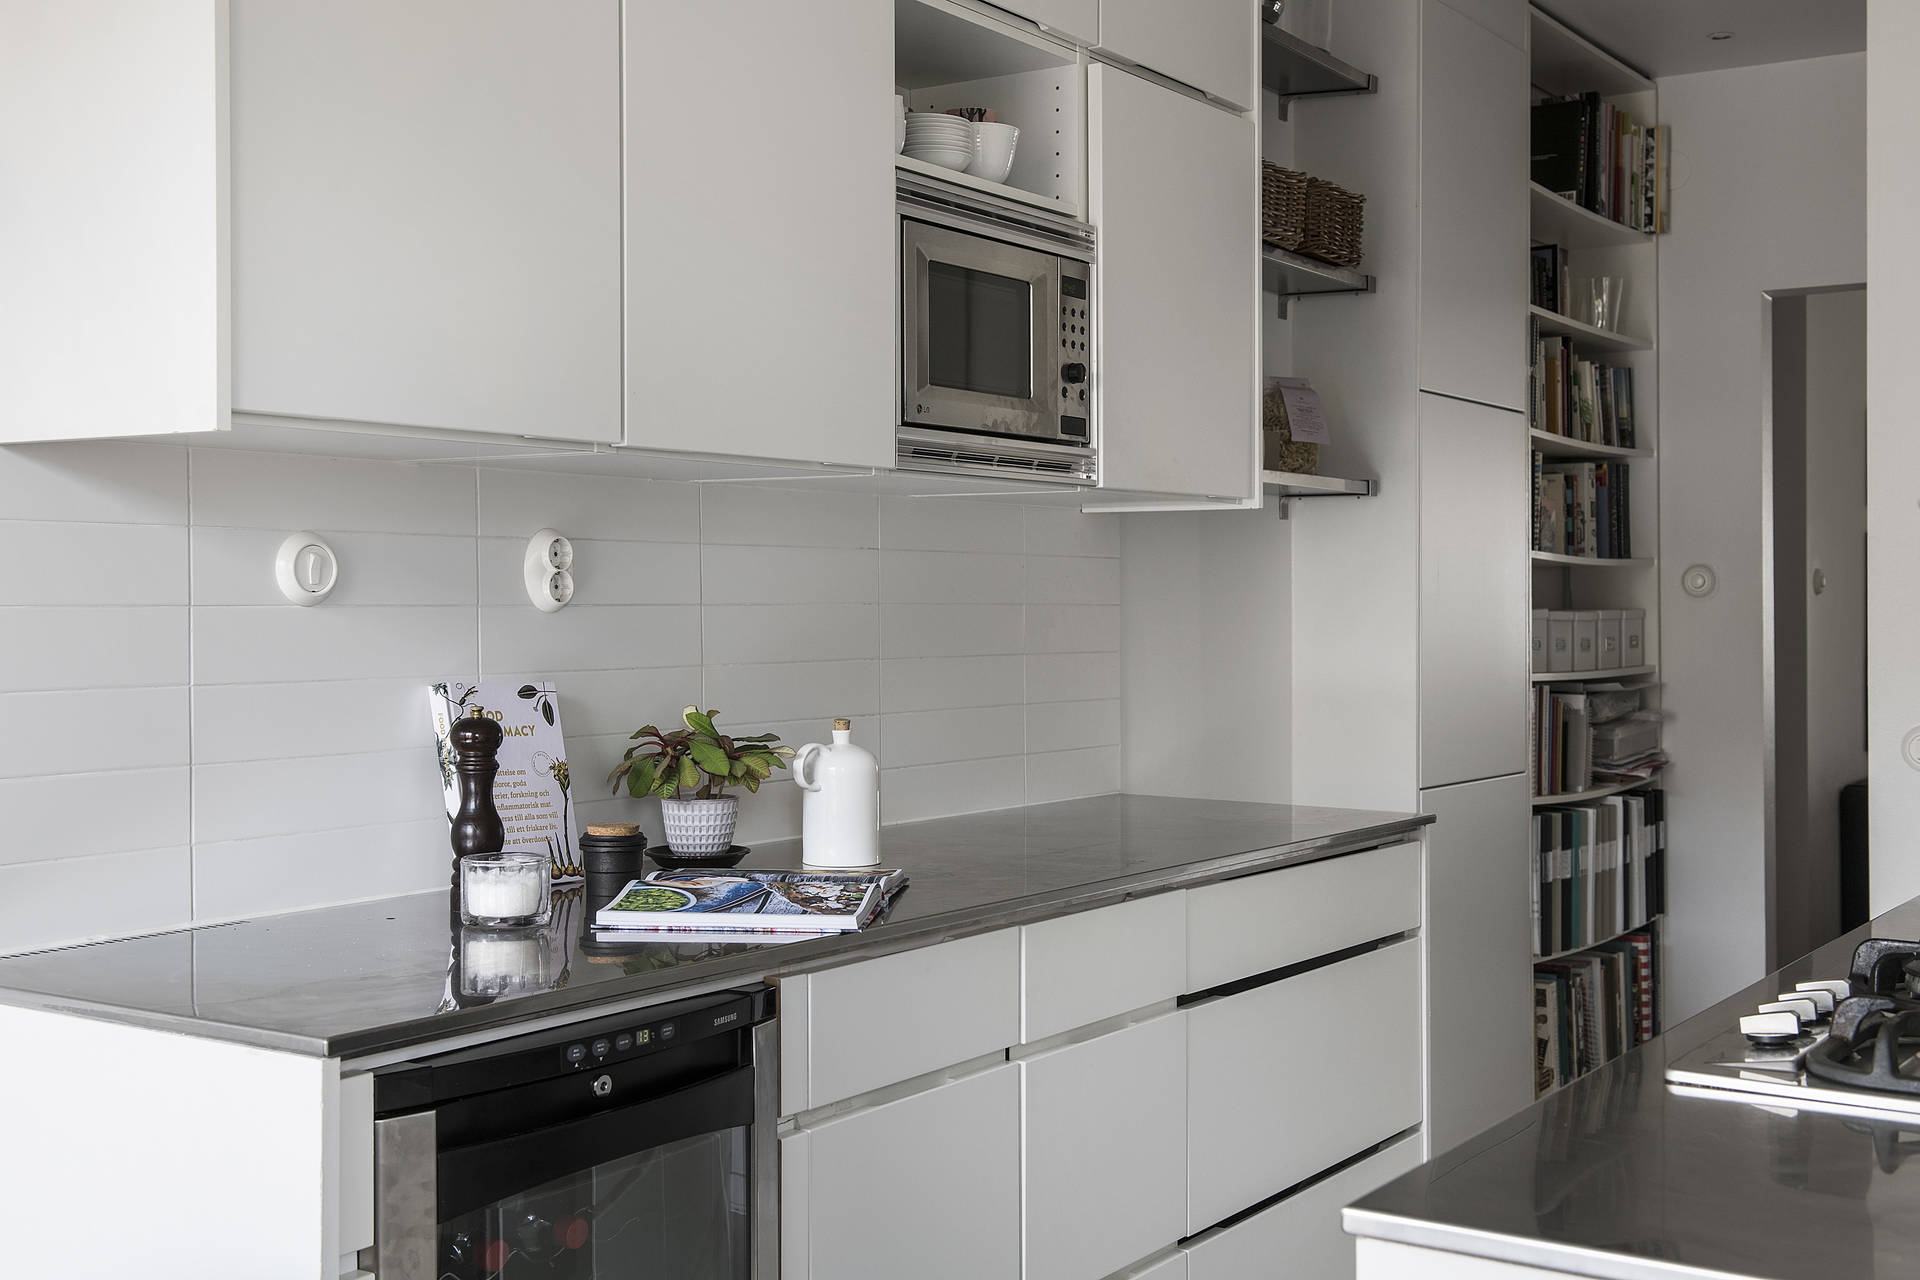 The simple style continues in the kitchen.